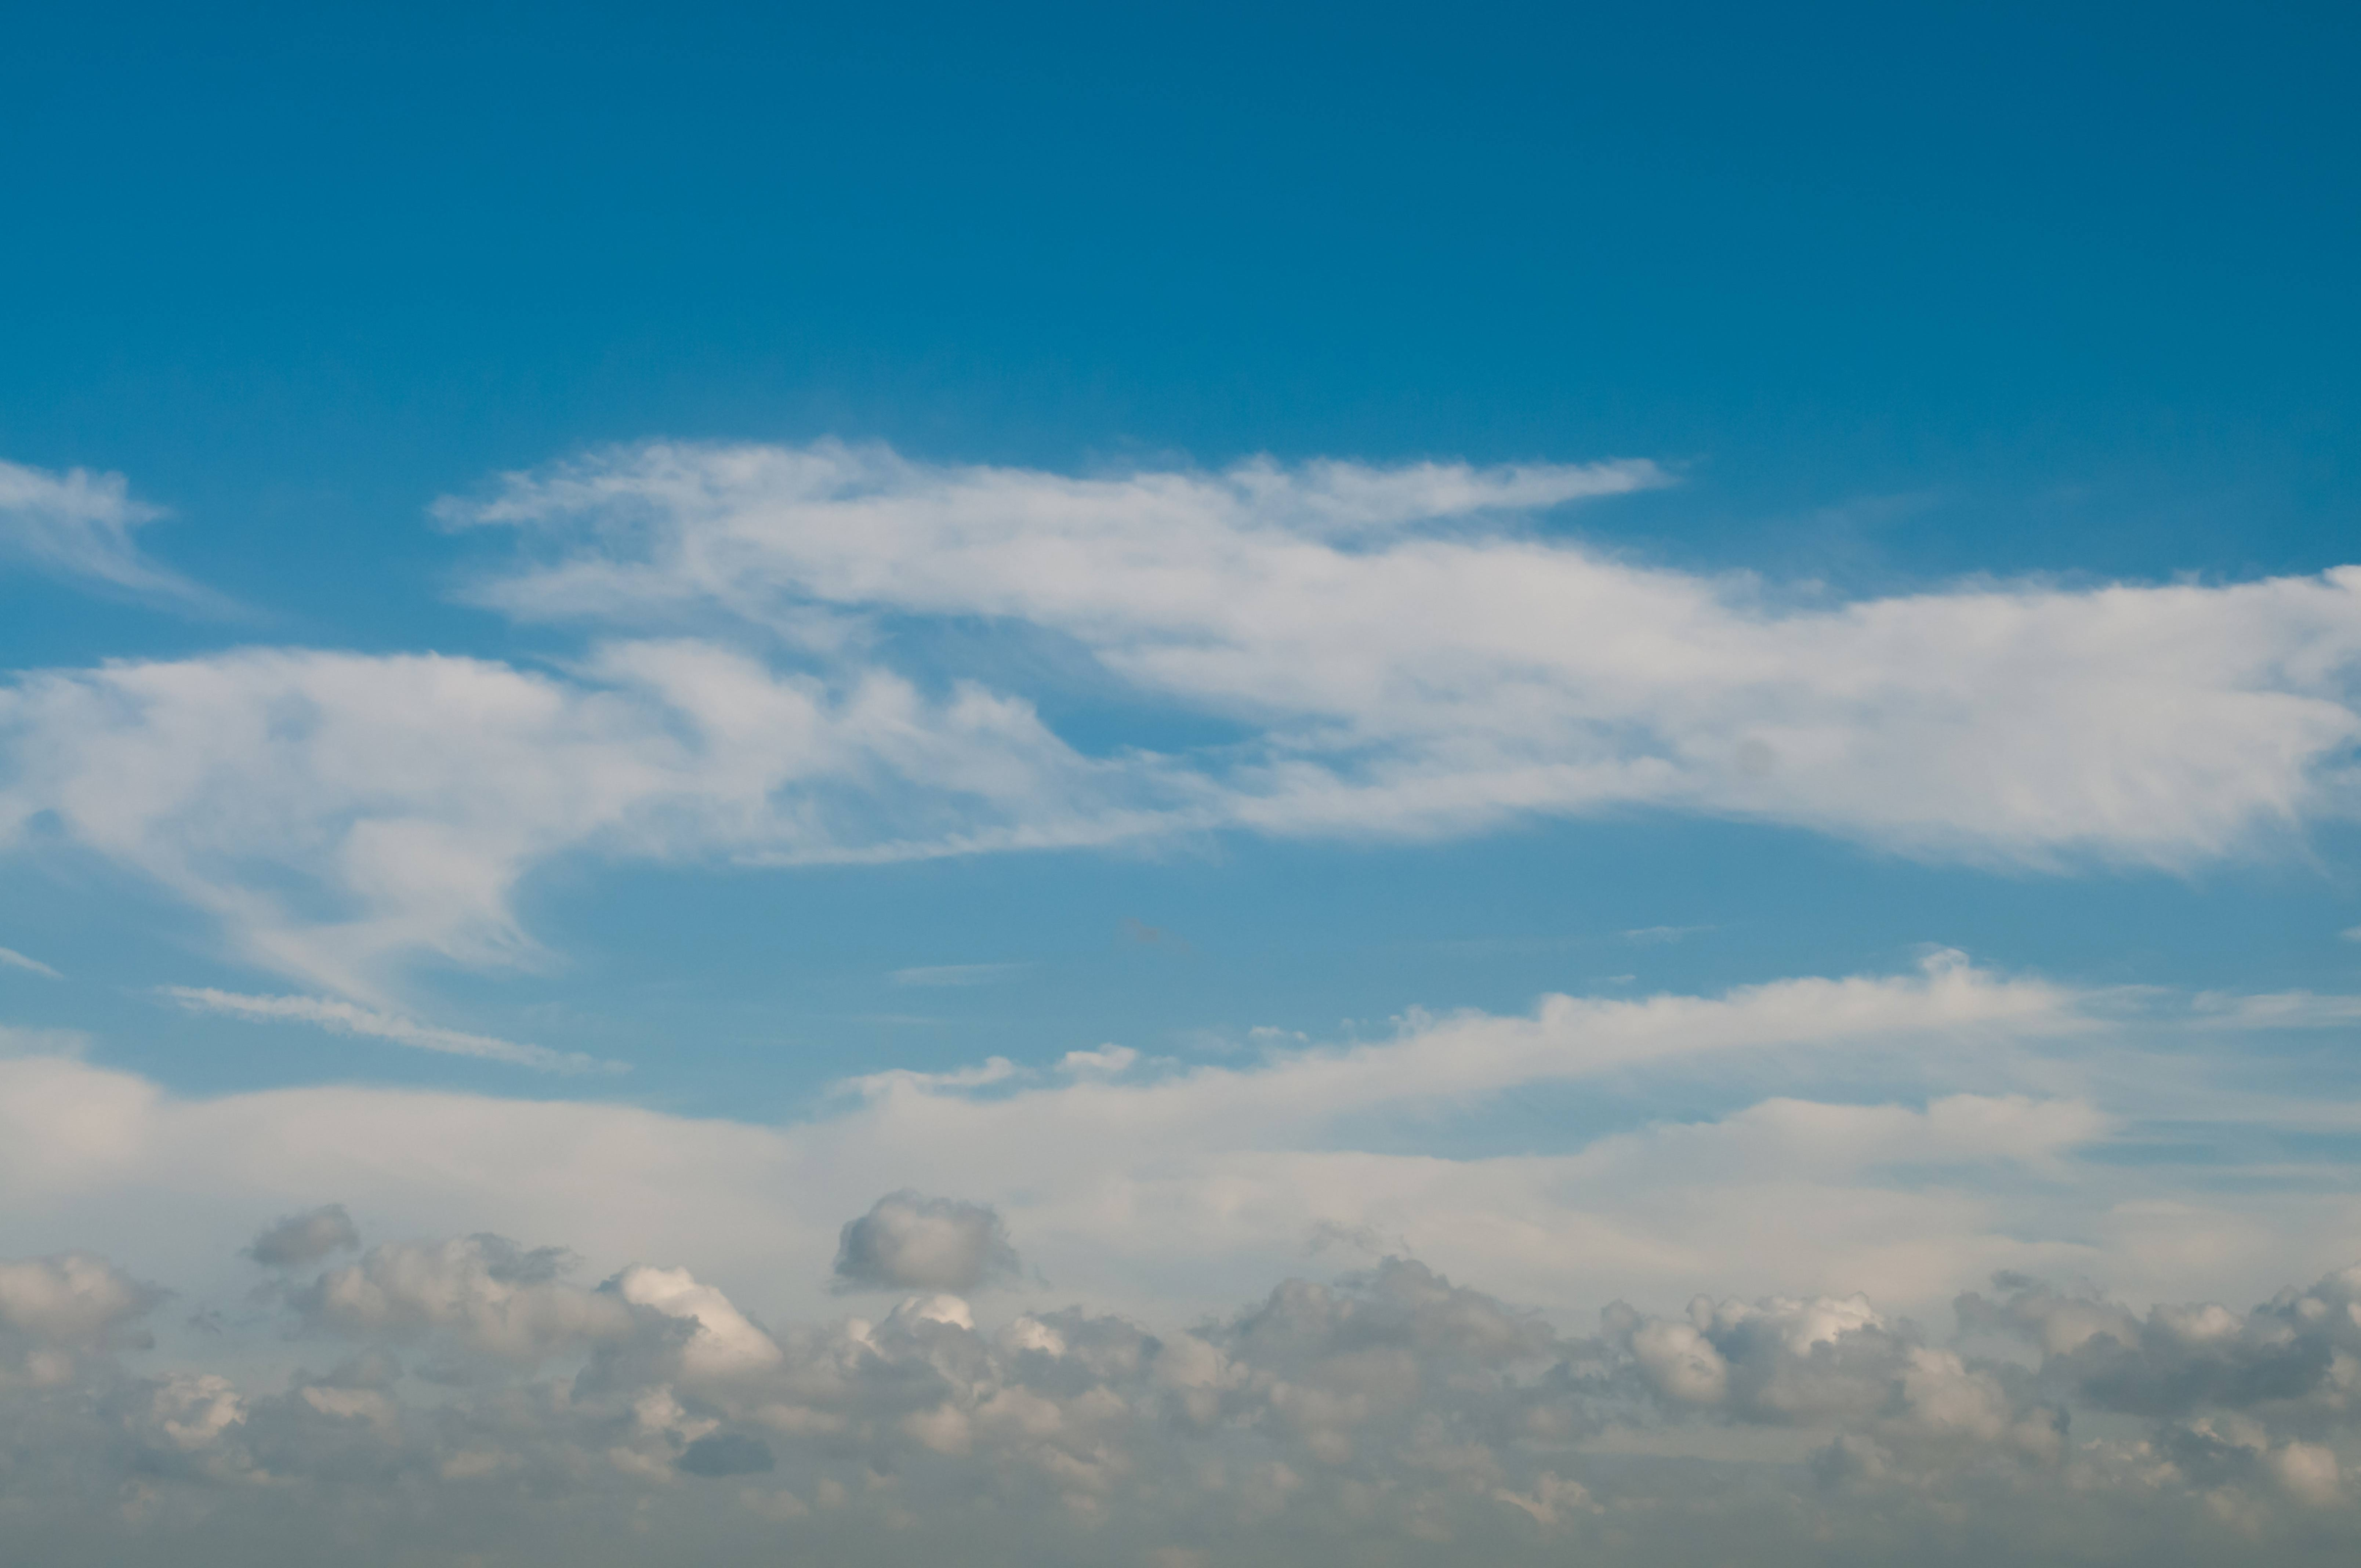 Sky with various cloud formations